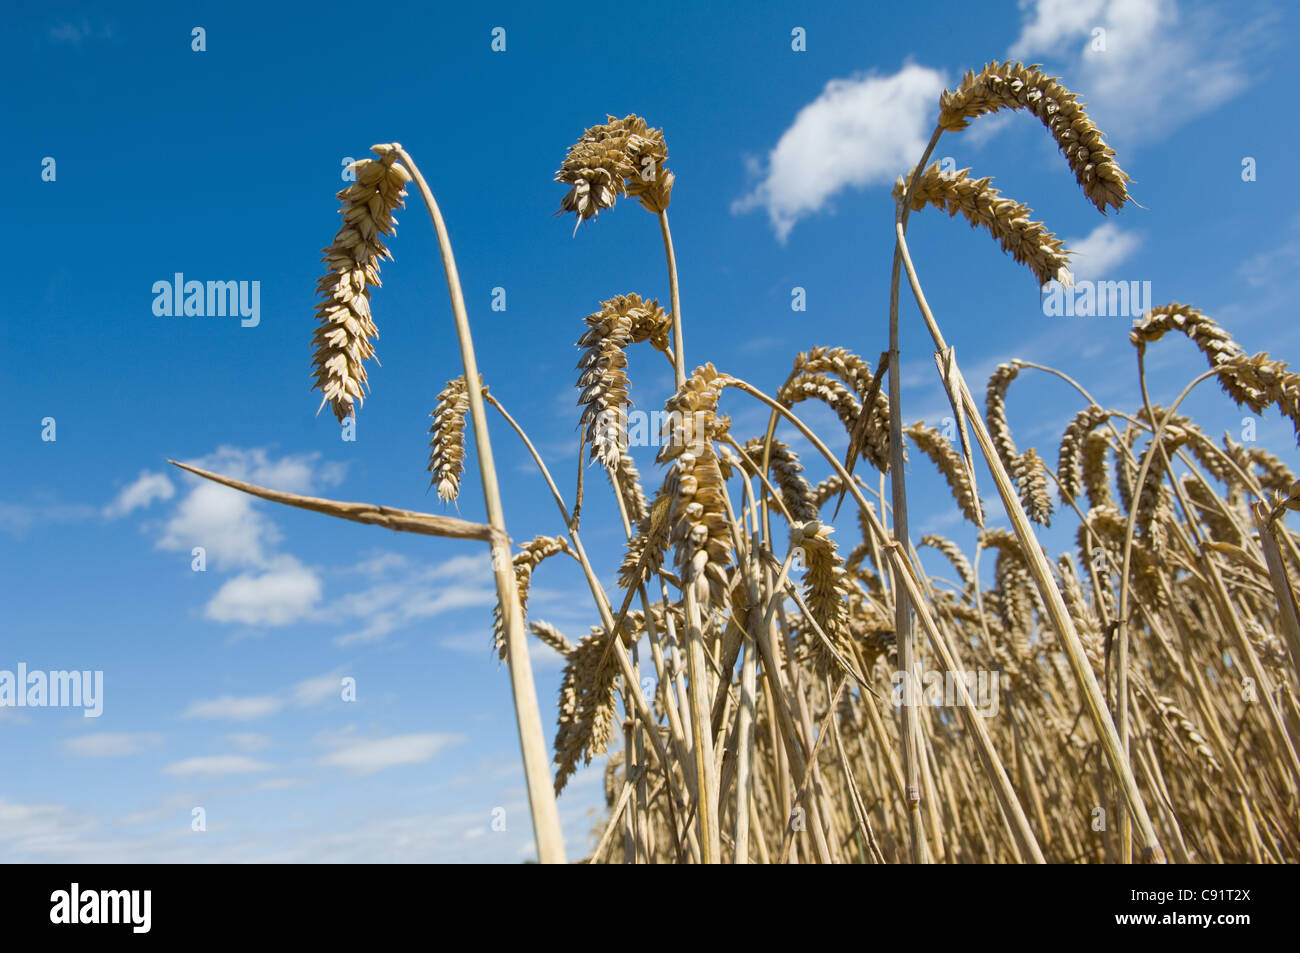 Close up of wheat stalks in field - Stock Image